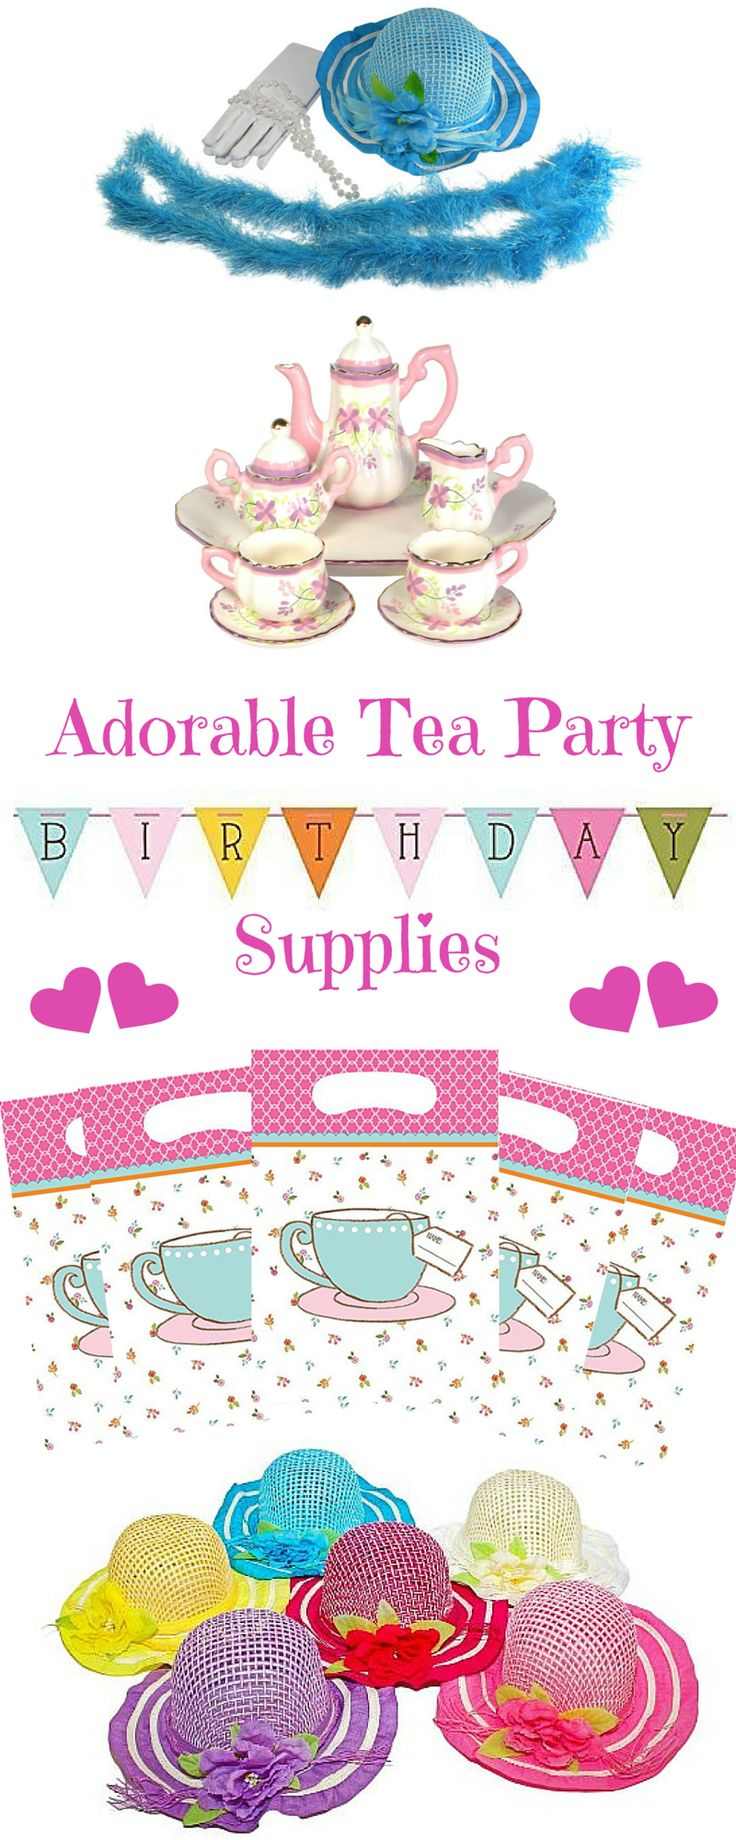 Adorable tea party supplies for little girls.  Perfect for birthday parties!